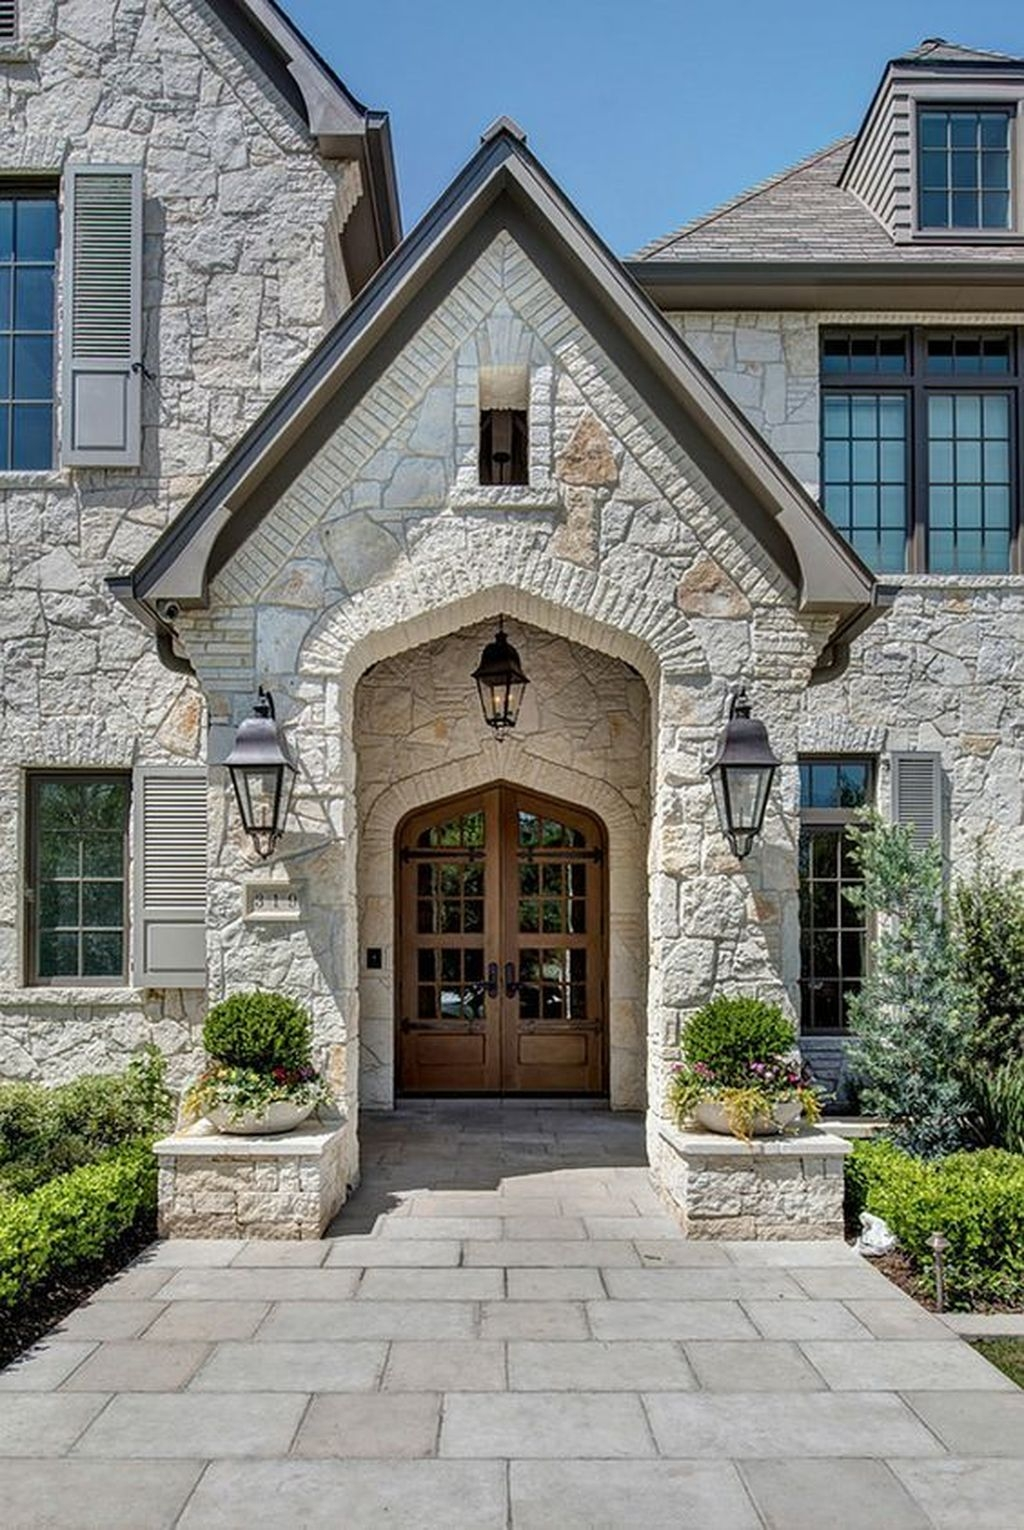 Stylish French Country Exterior For Your Home Design Inspiration 38